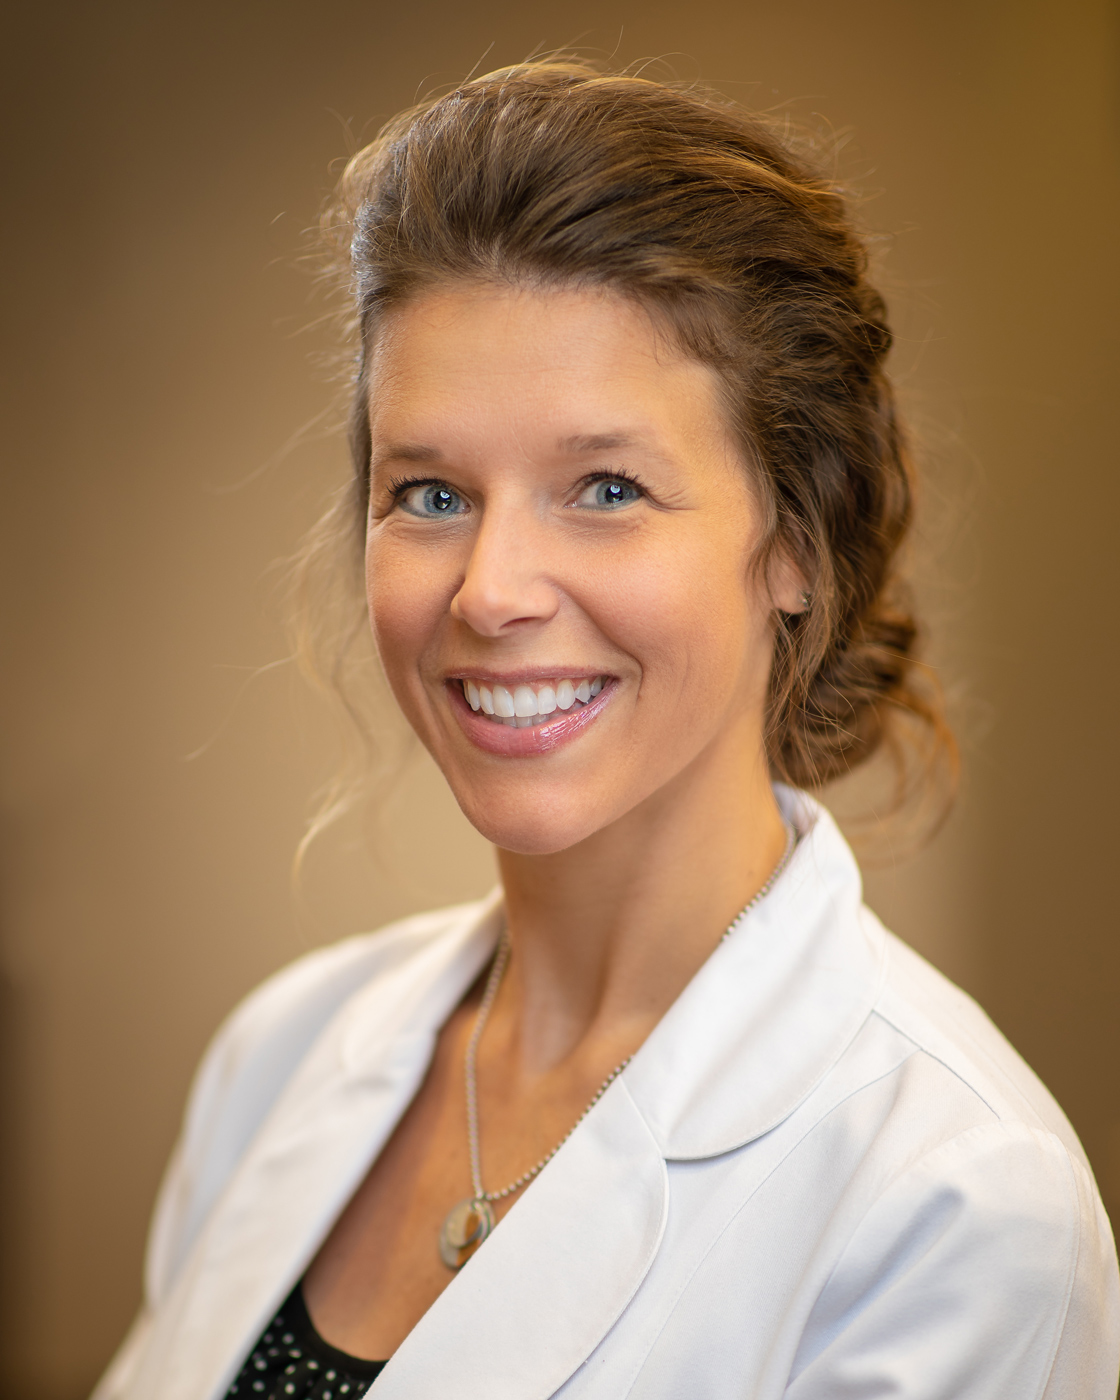 Jynell - Lead Hygienist - Jynell is a compassionate hygienist whose #1 priority is patient comfort.